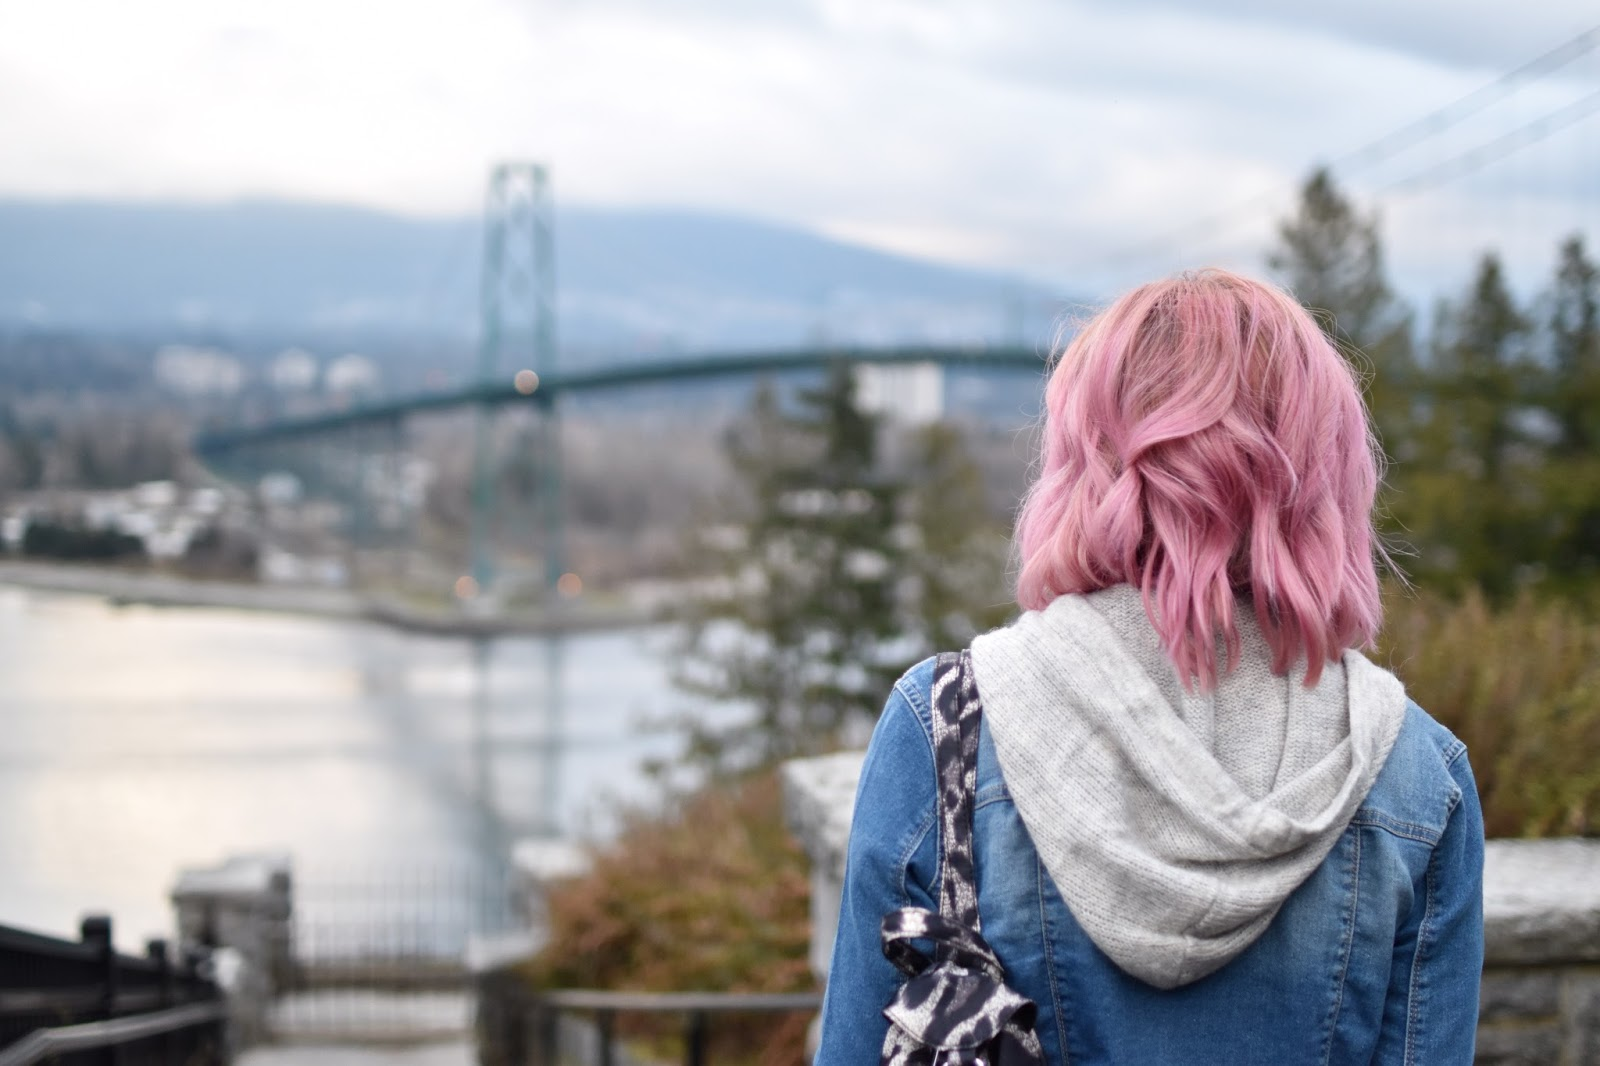 Monika Faulkner outfit inspiration - hoodie sweater, denim jacket, leopard backpack, pink hair